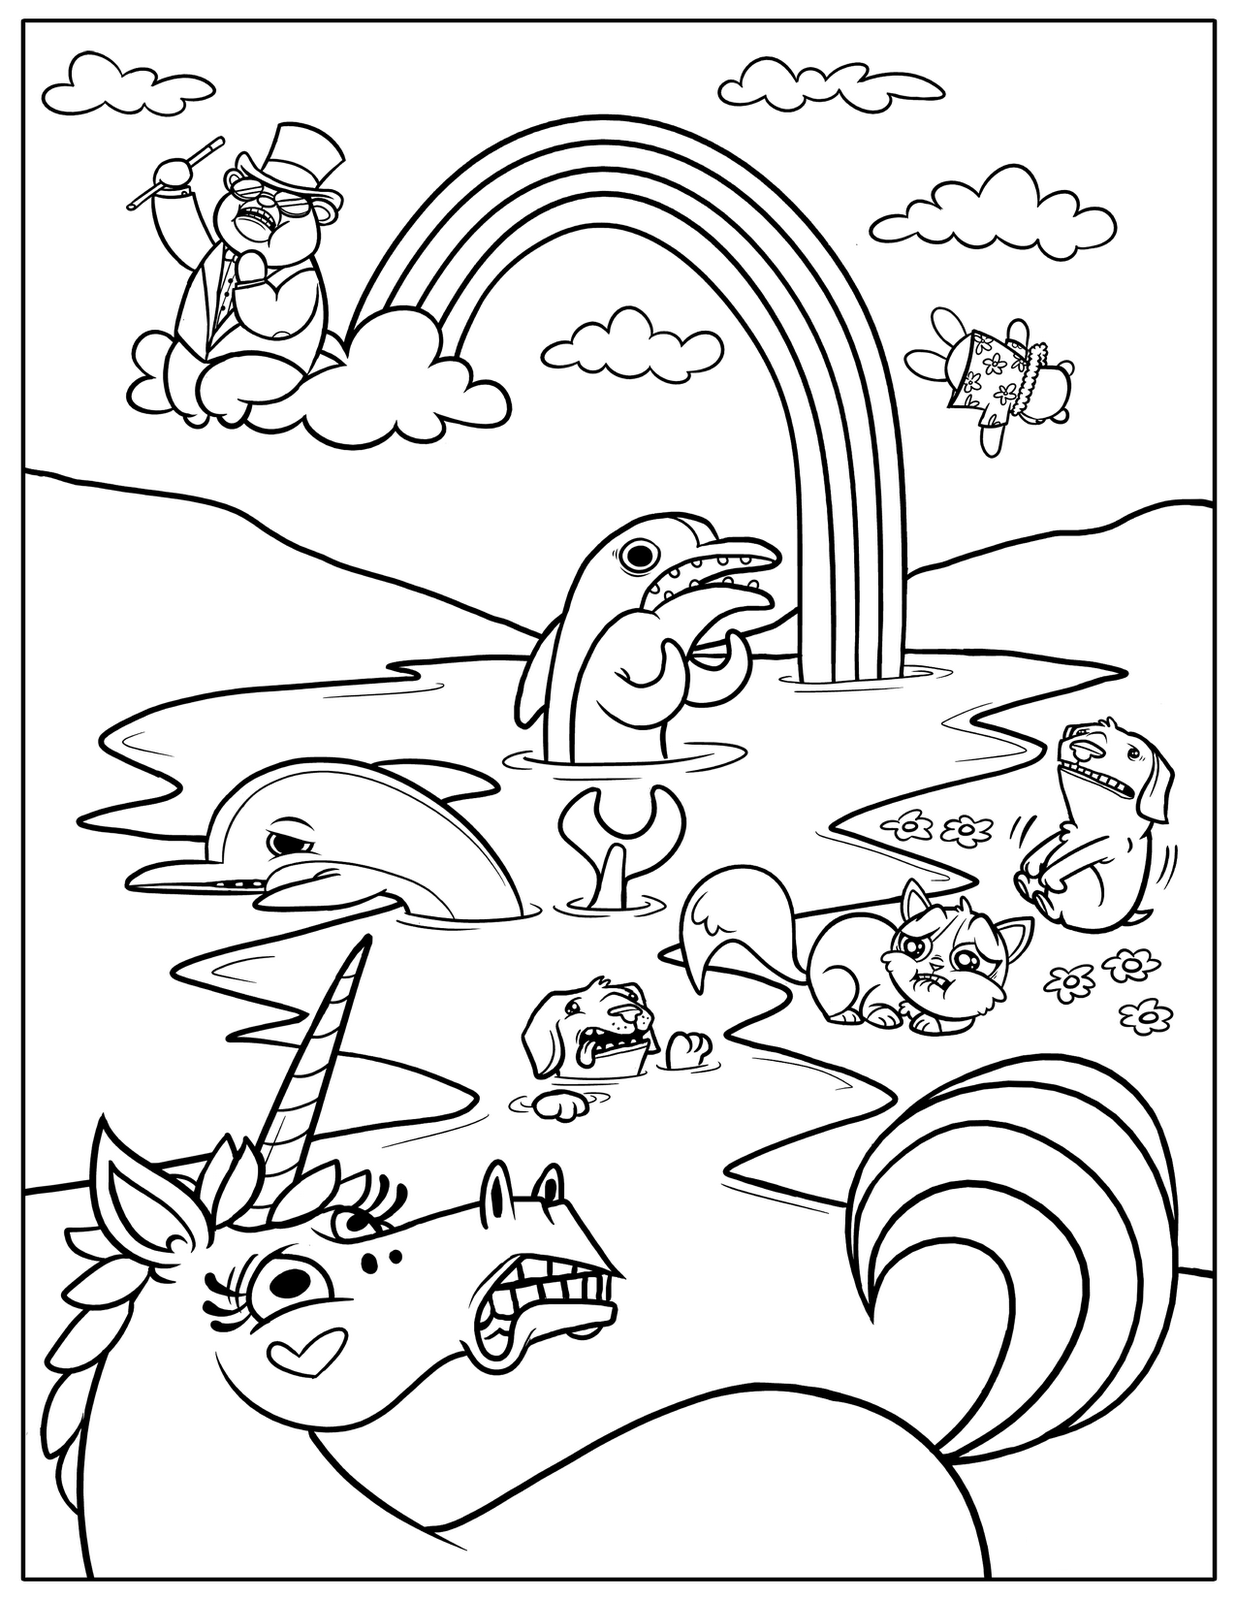 kids printable coloring pages free printable fairy coloring pages for kids printable coloring kids pages